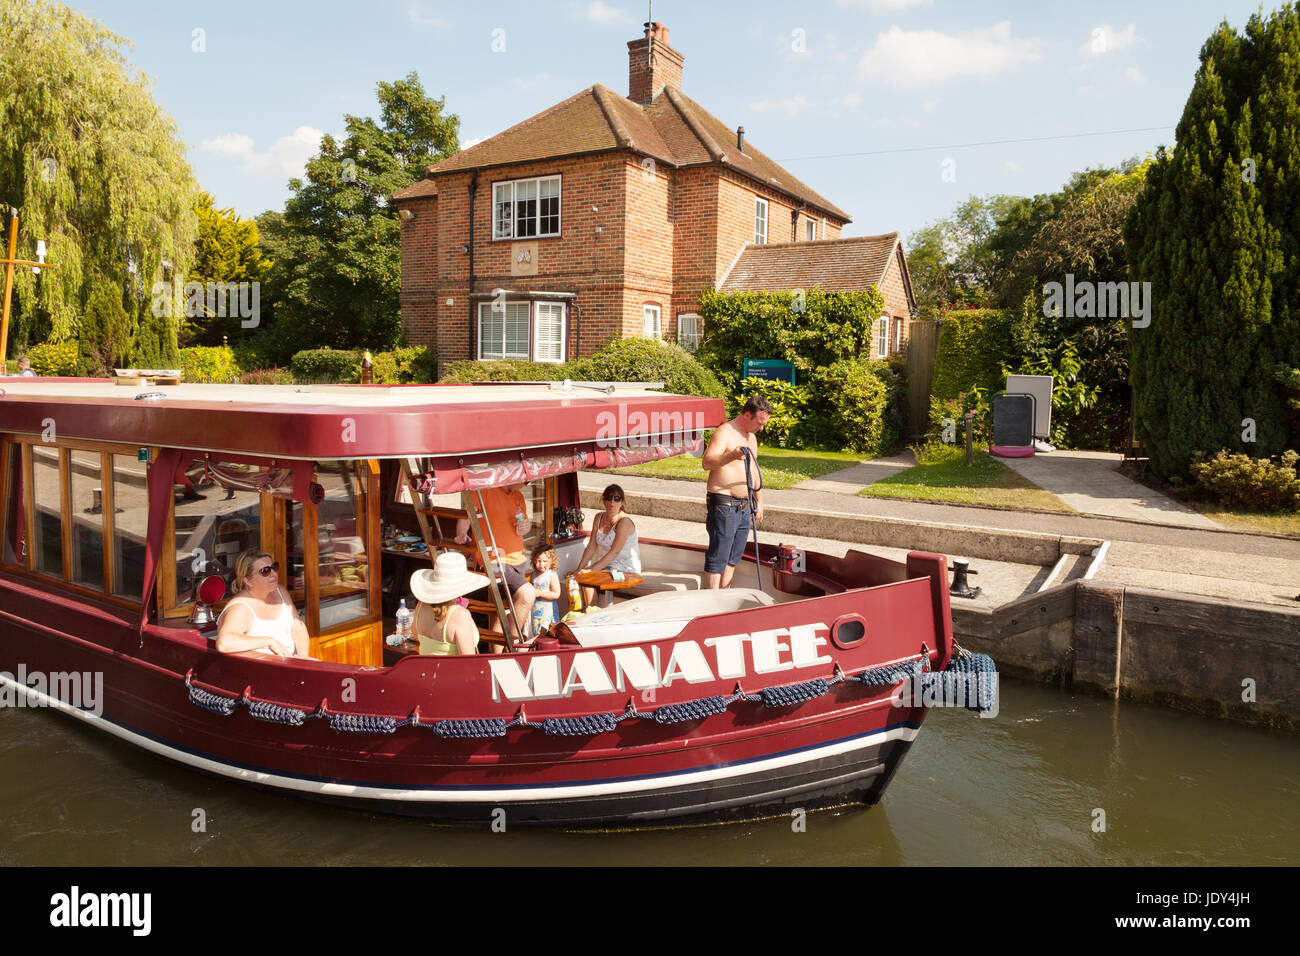 A boat in Shiplake Lock, on the River Thames, Oxfordshire England UK - Stock Image